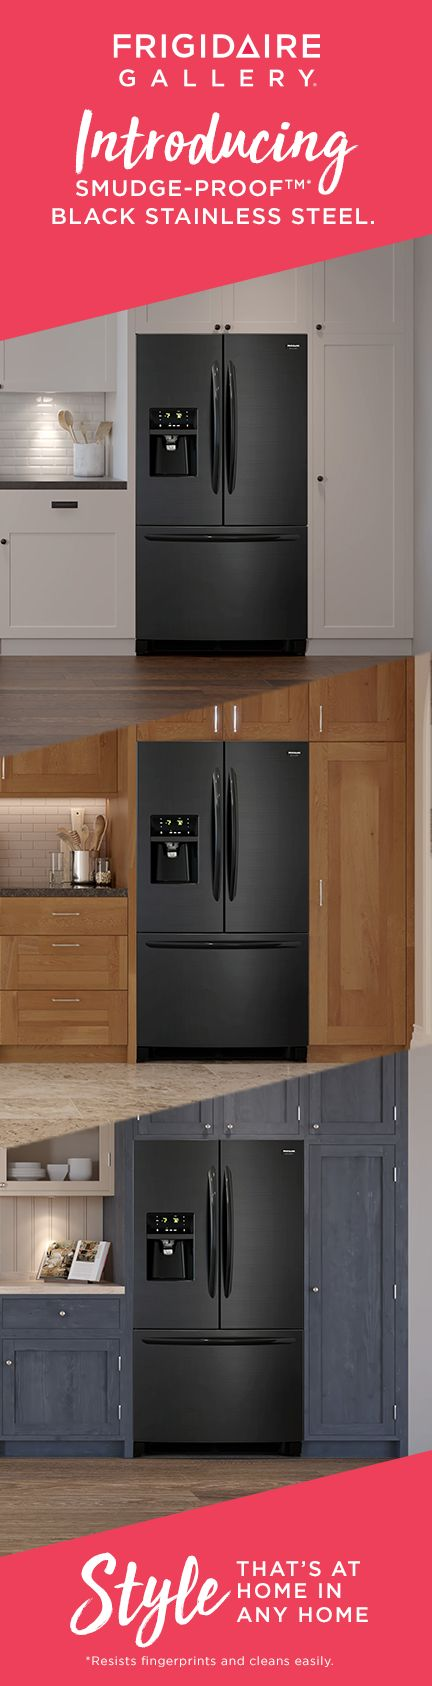 No matter your style, The Frigidaire Gallery Smudge-Proof™ Black Stainless Steel Collection takes your kitchen's look to the next level.